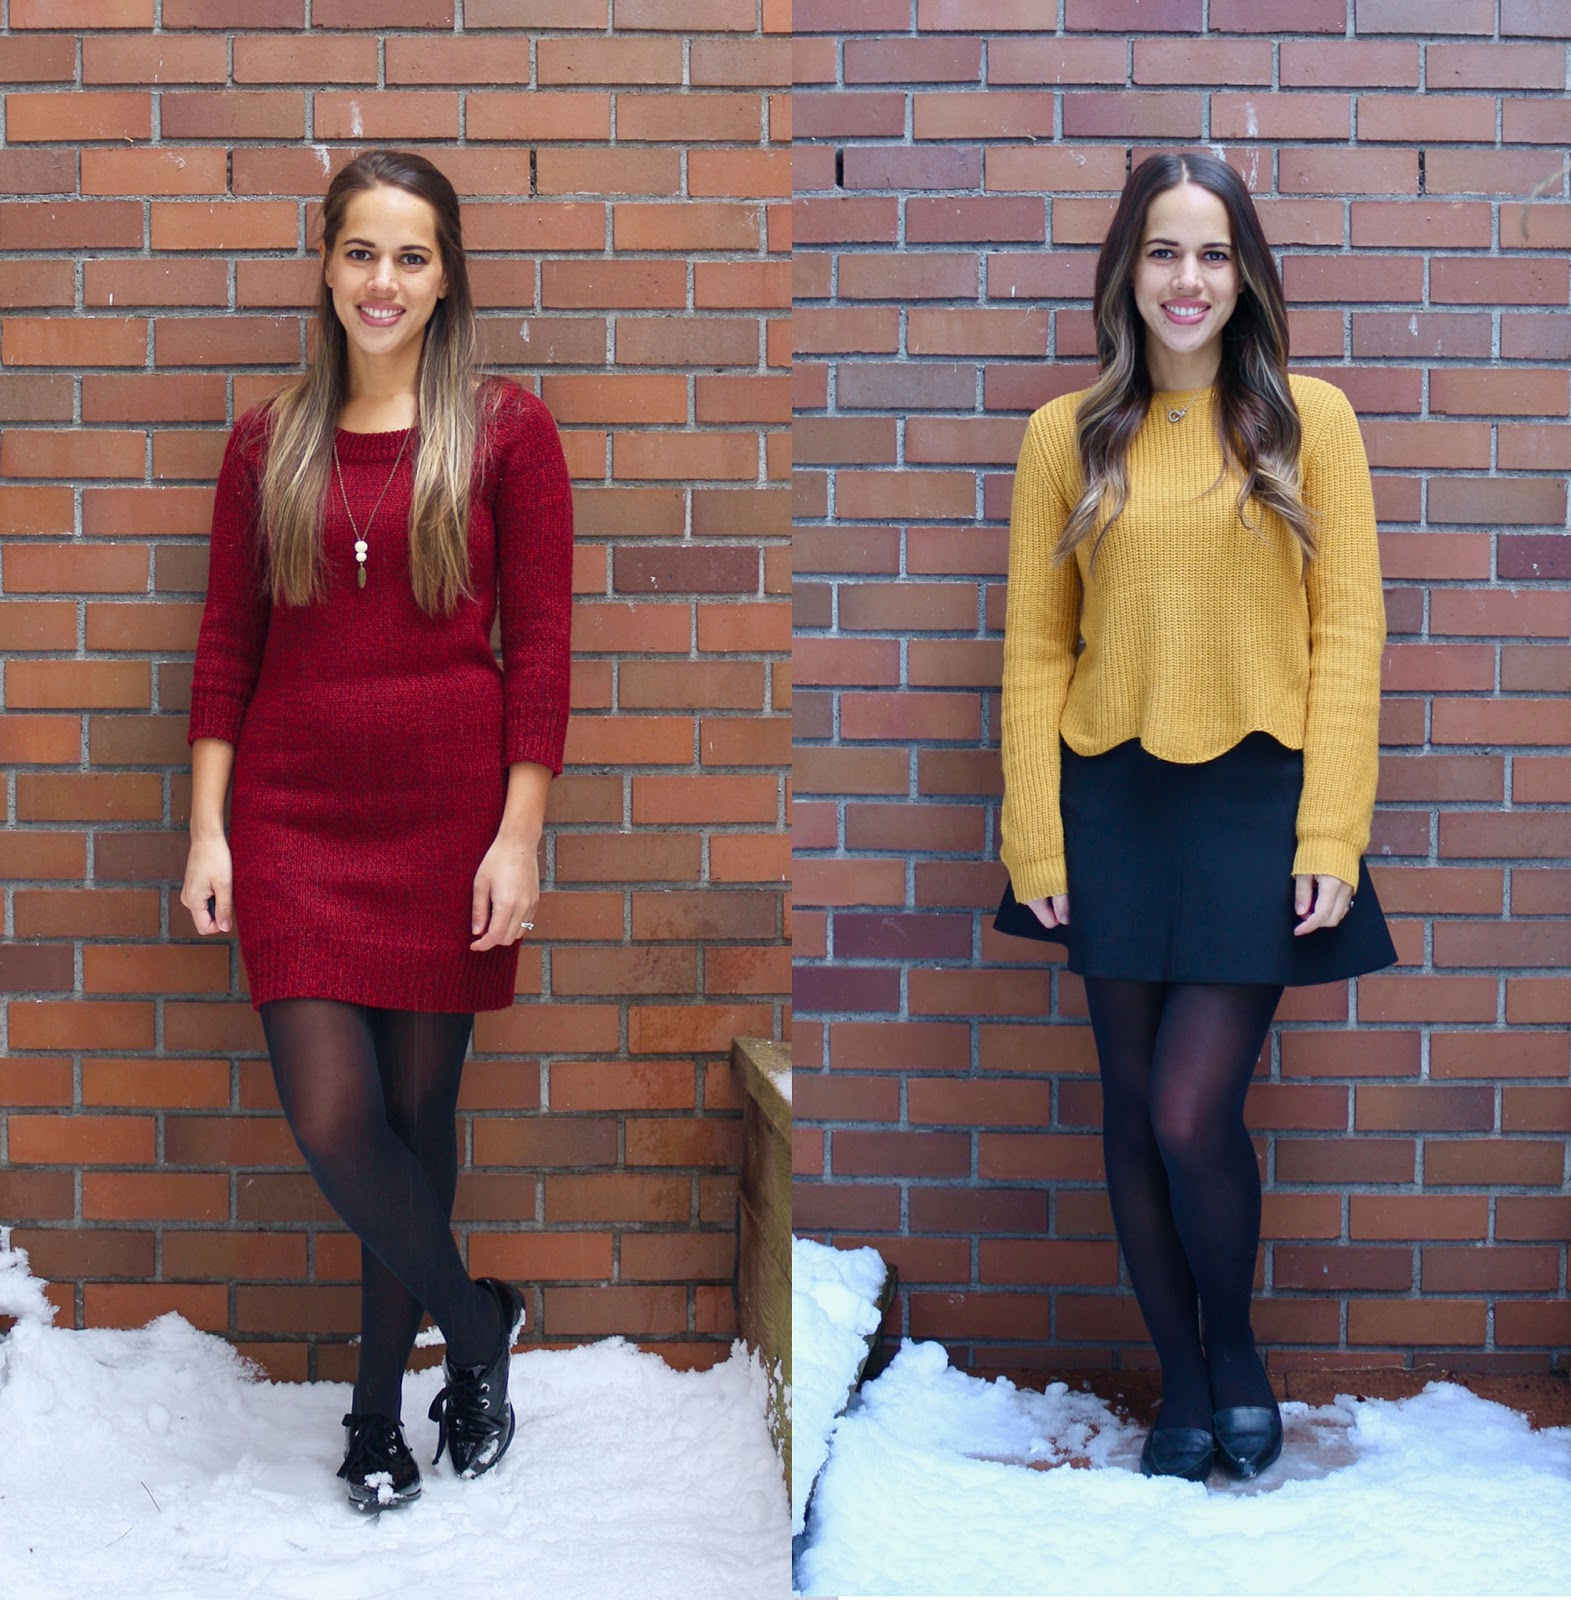 Jules in Flats February Work Outfits (Business Casual Workwear on a Budget)